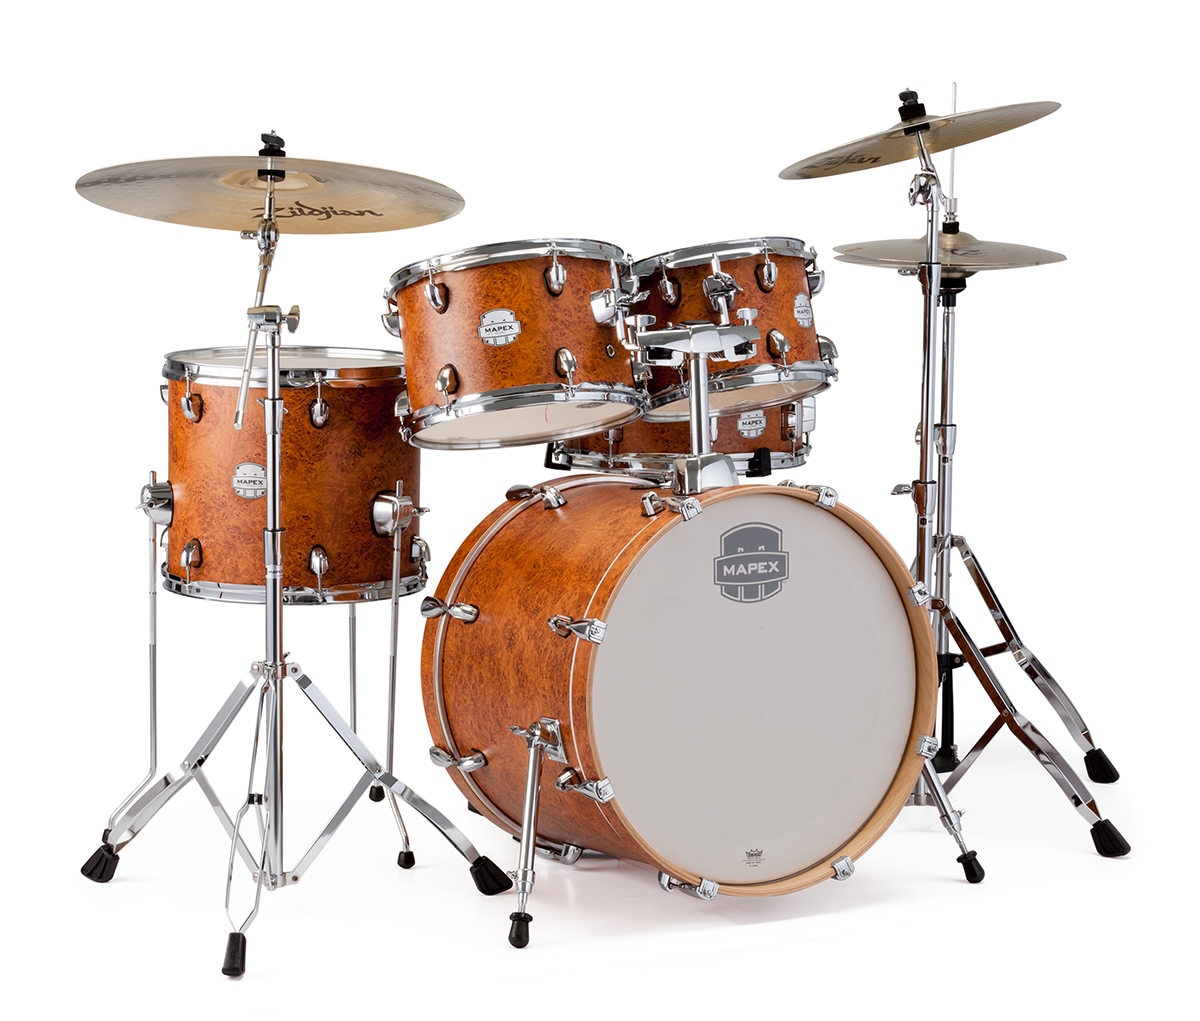 mapex drums mapex adds a new edge with their new storm series drum kits with hardware. Black Bedroom Furniture Sets. Home Design Ideas